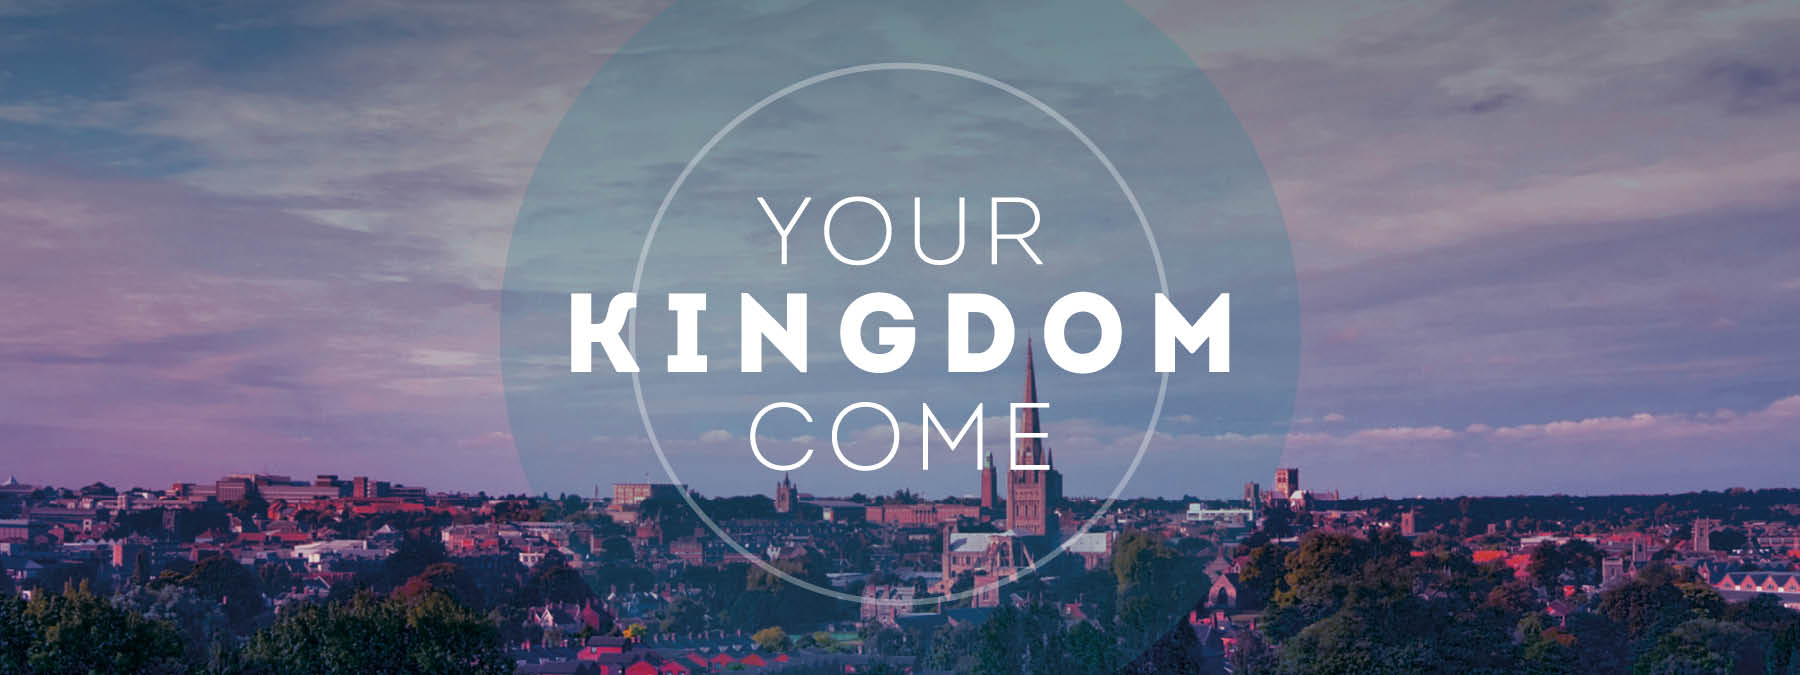 Your Kingdom Come - Conference